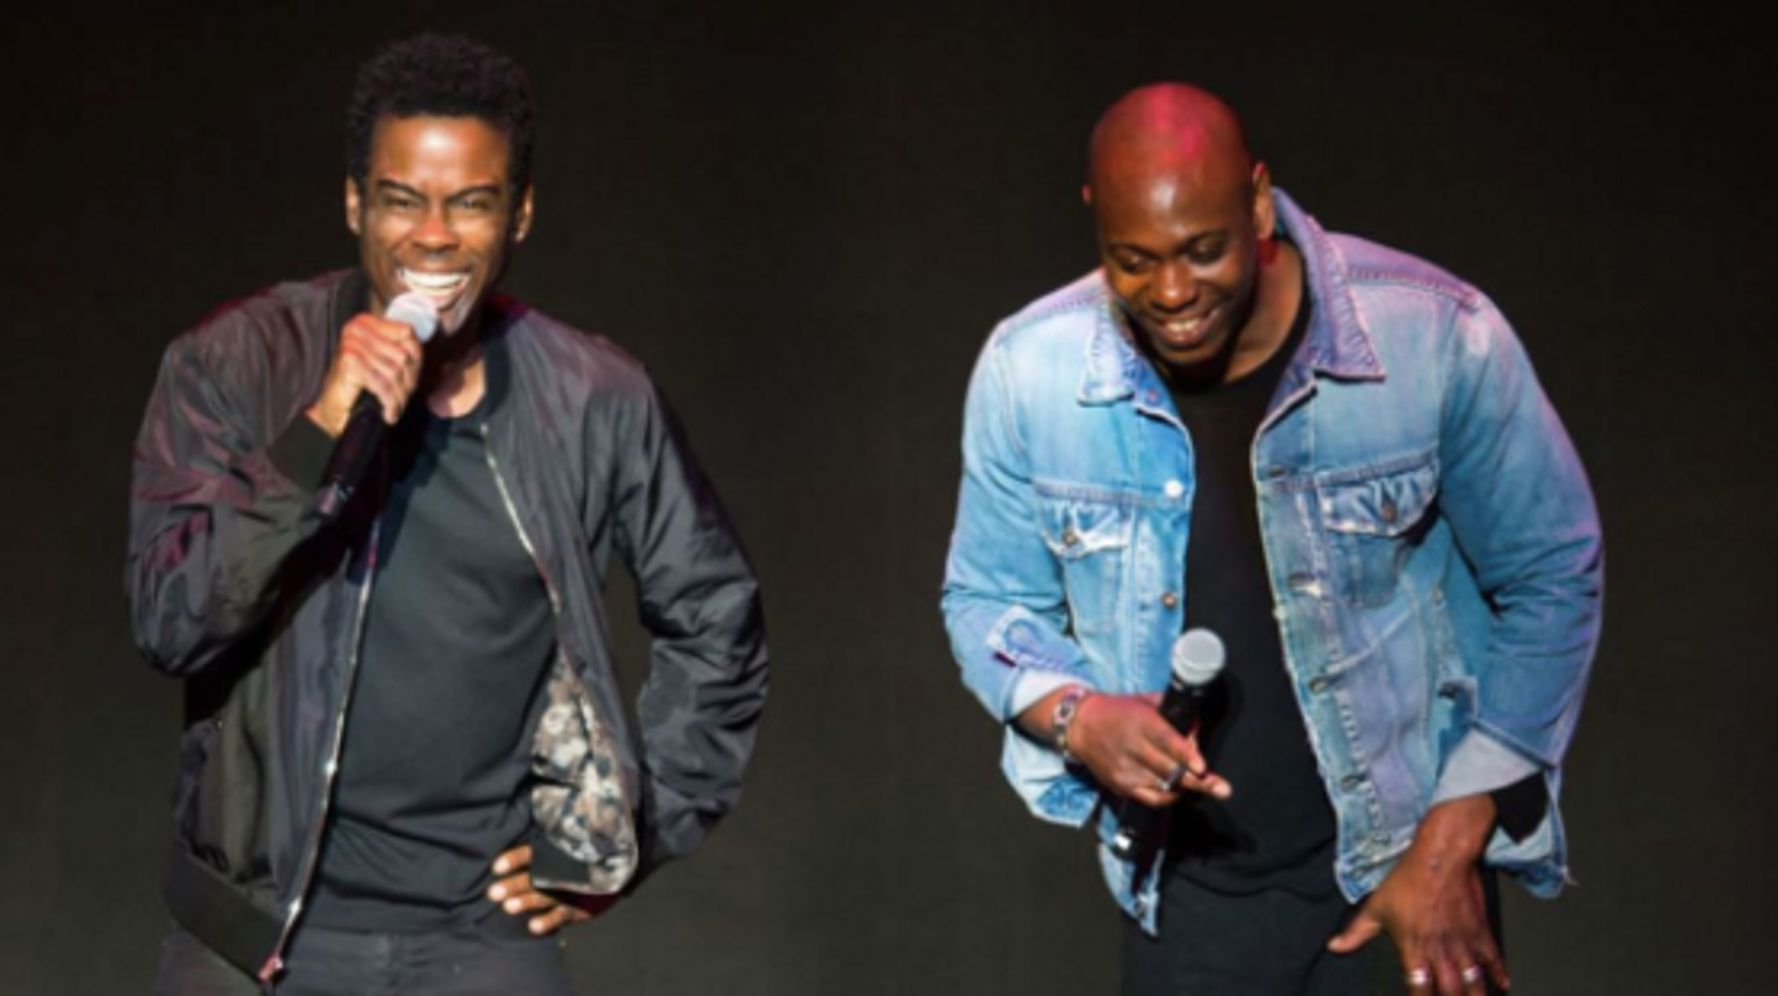 Chris Rock And Dave Chappelle Did A Surprise Stand-Up Set Together This Weekend